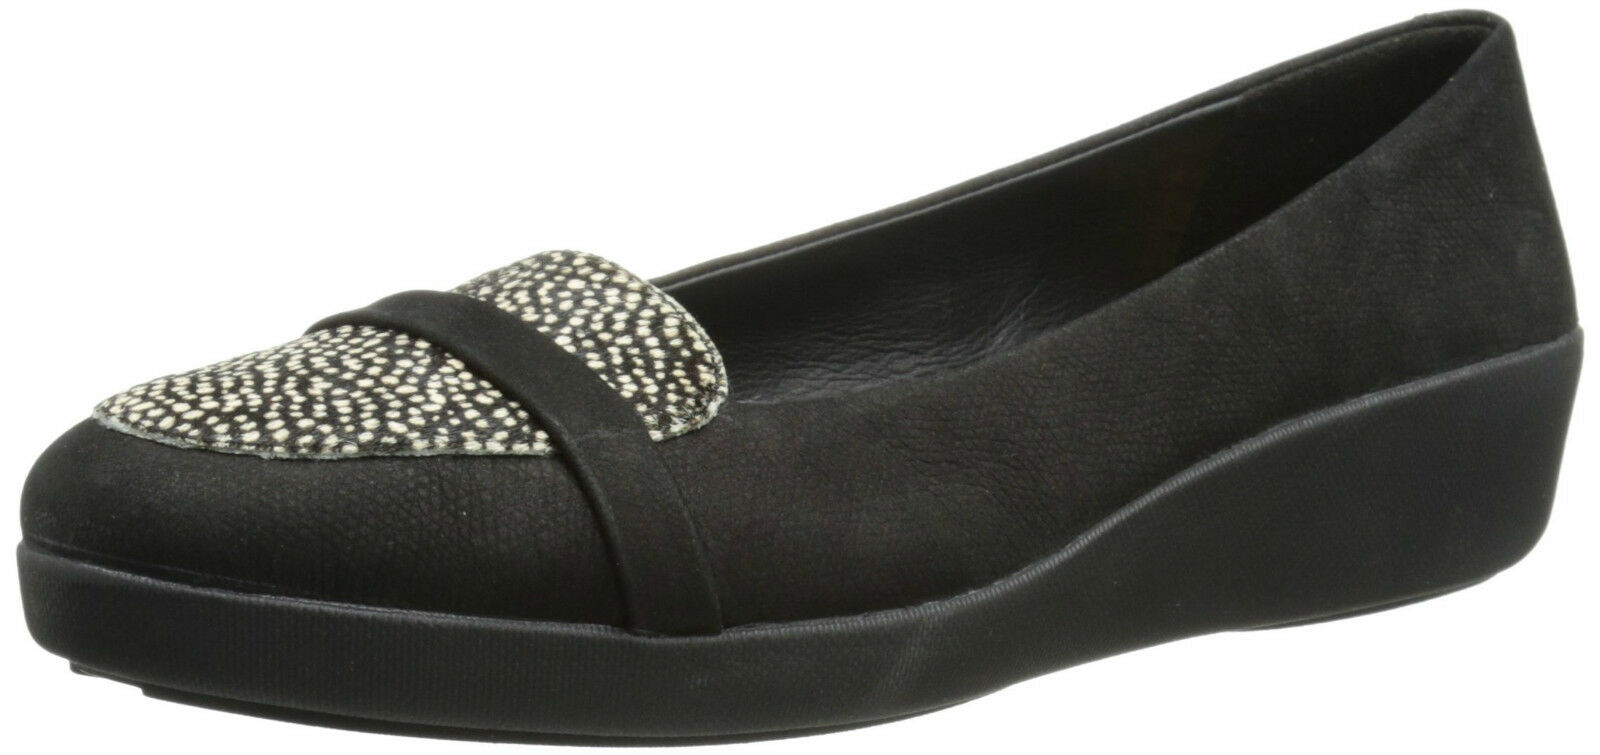 FitFlop™ F-POP LEATHER & PONY HAIR MIX LOAFERS PUMPS Schuhe UK 4.5 EU37.5